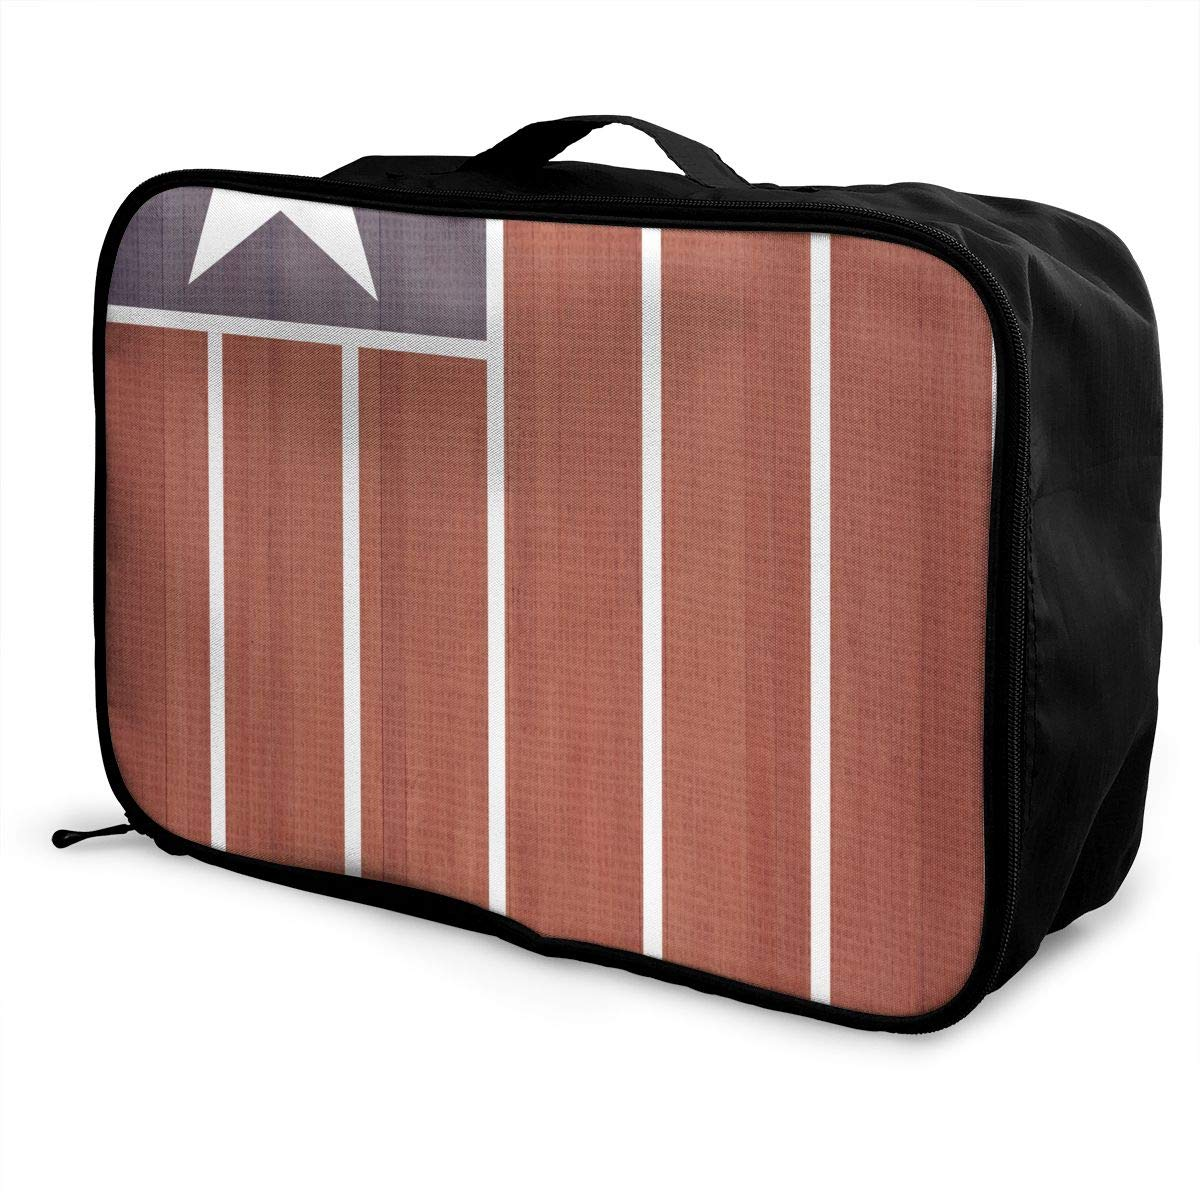 ADGAI Pentagram Vertical Stripes Canvas Travel Weekender Bag,Fashion Custom Lightweight Large Capacity Portable Luggage Bag,Suitcase Trolley Bag